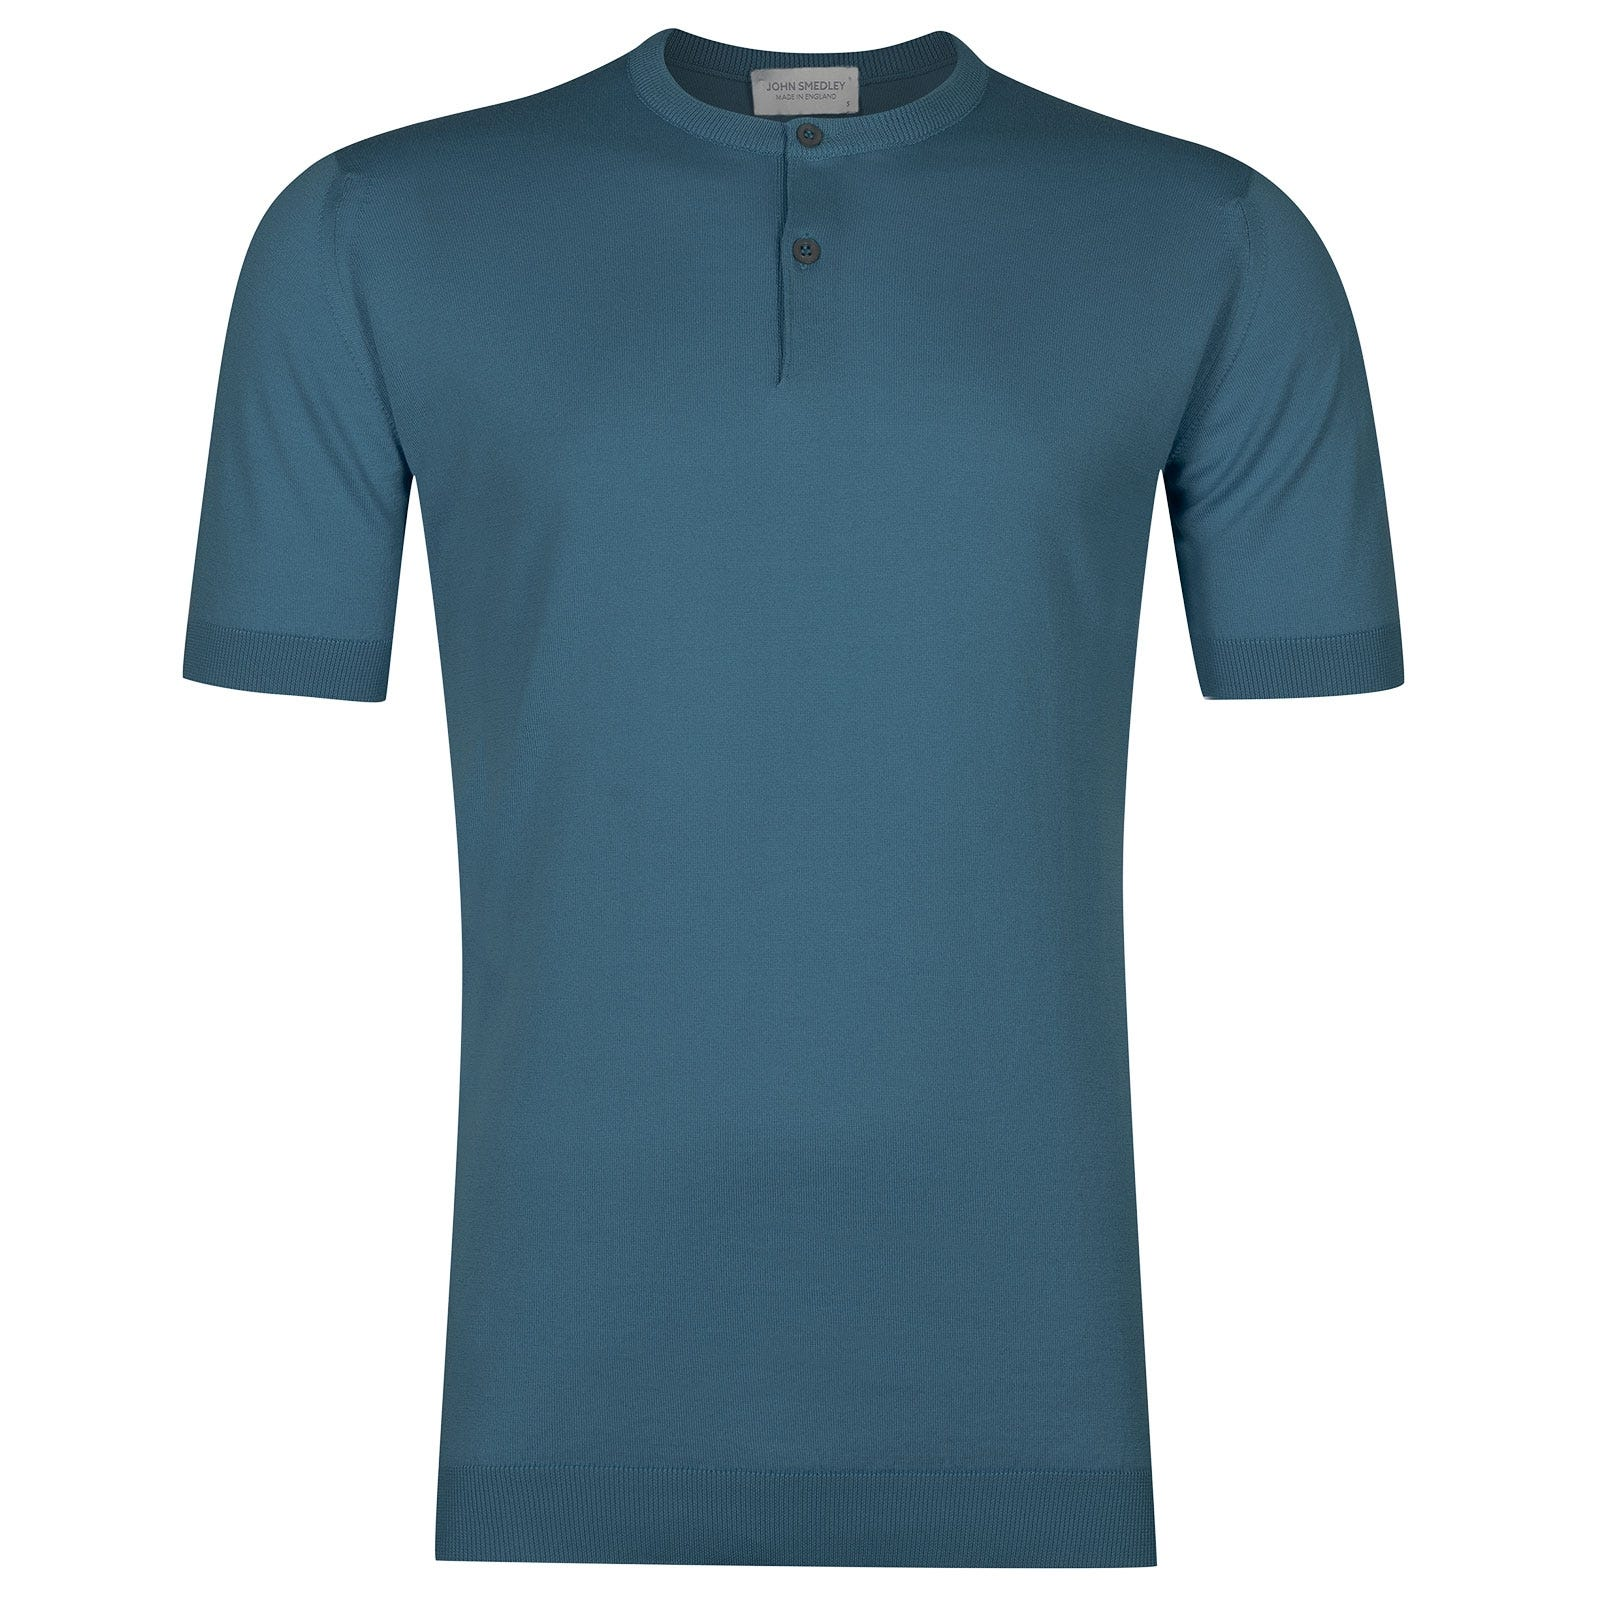 John Smedley Bennett Sea Island Cotton T-shirt in Bias Blue-S